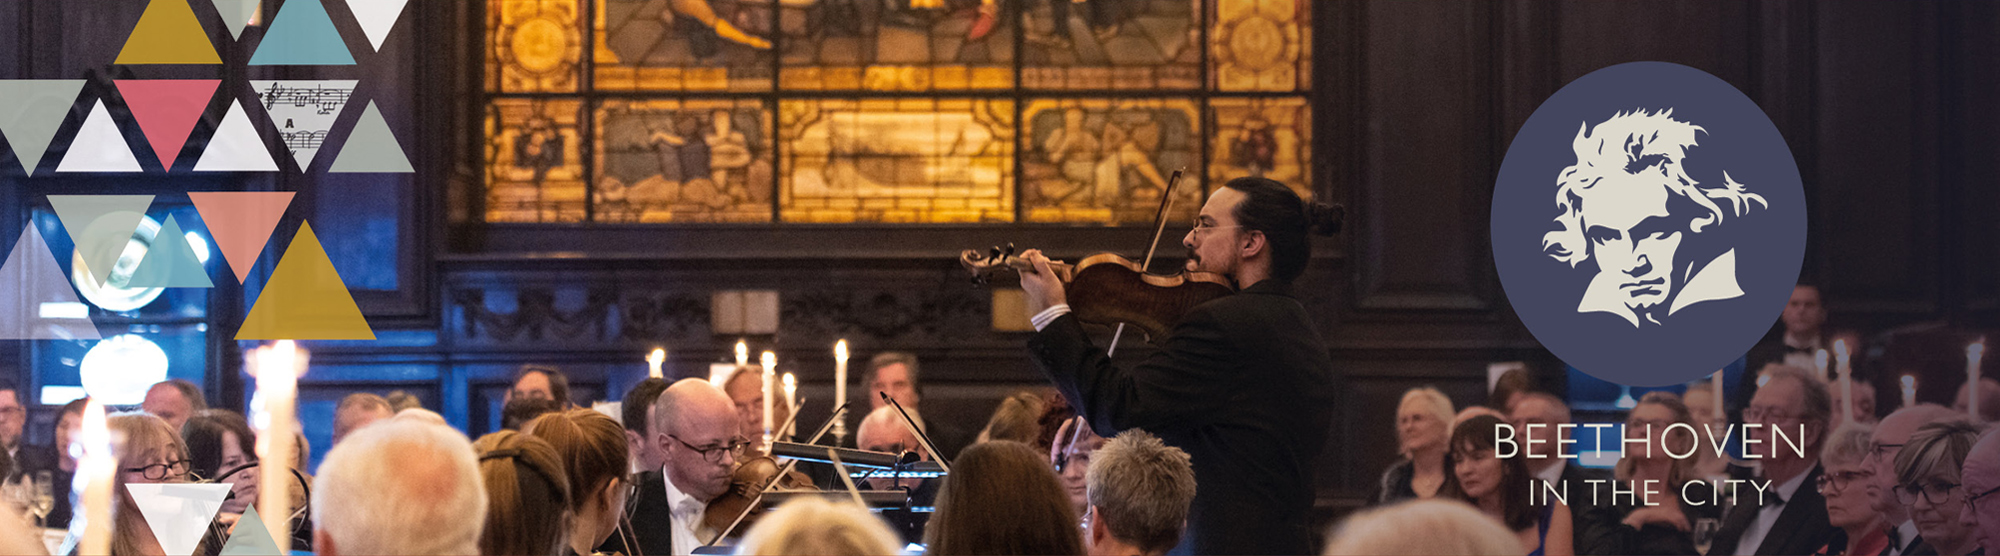 Image of orchestra performing in london